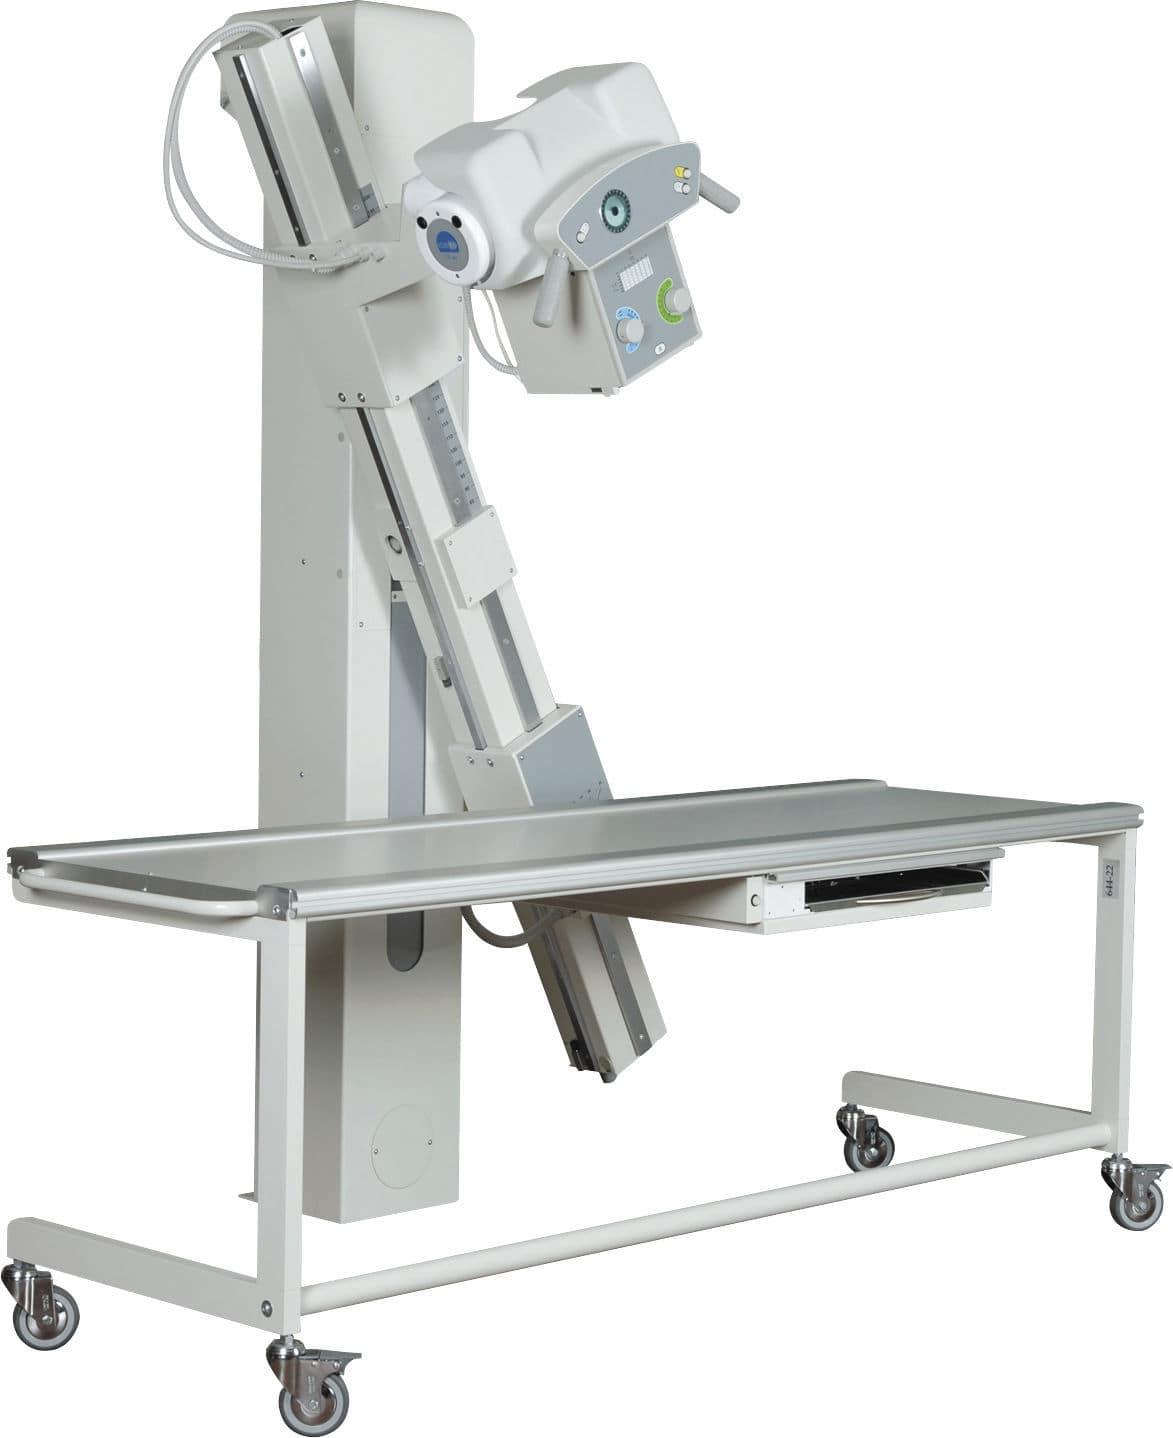 Radiography system / analog / for multipurpose radiography / with swiveling tube stand - Ares RC M - MS Westfalia